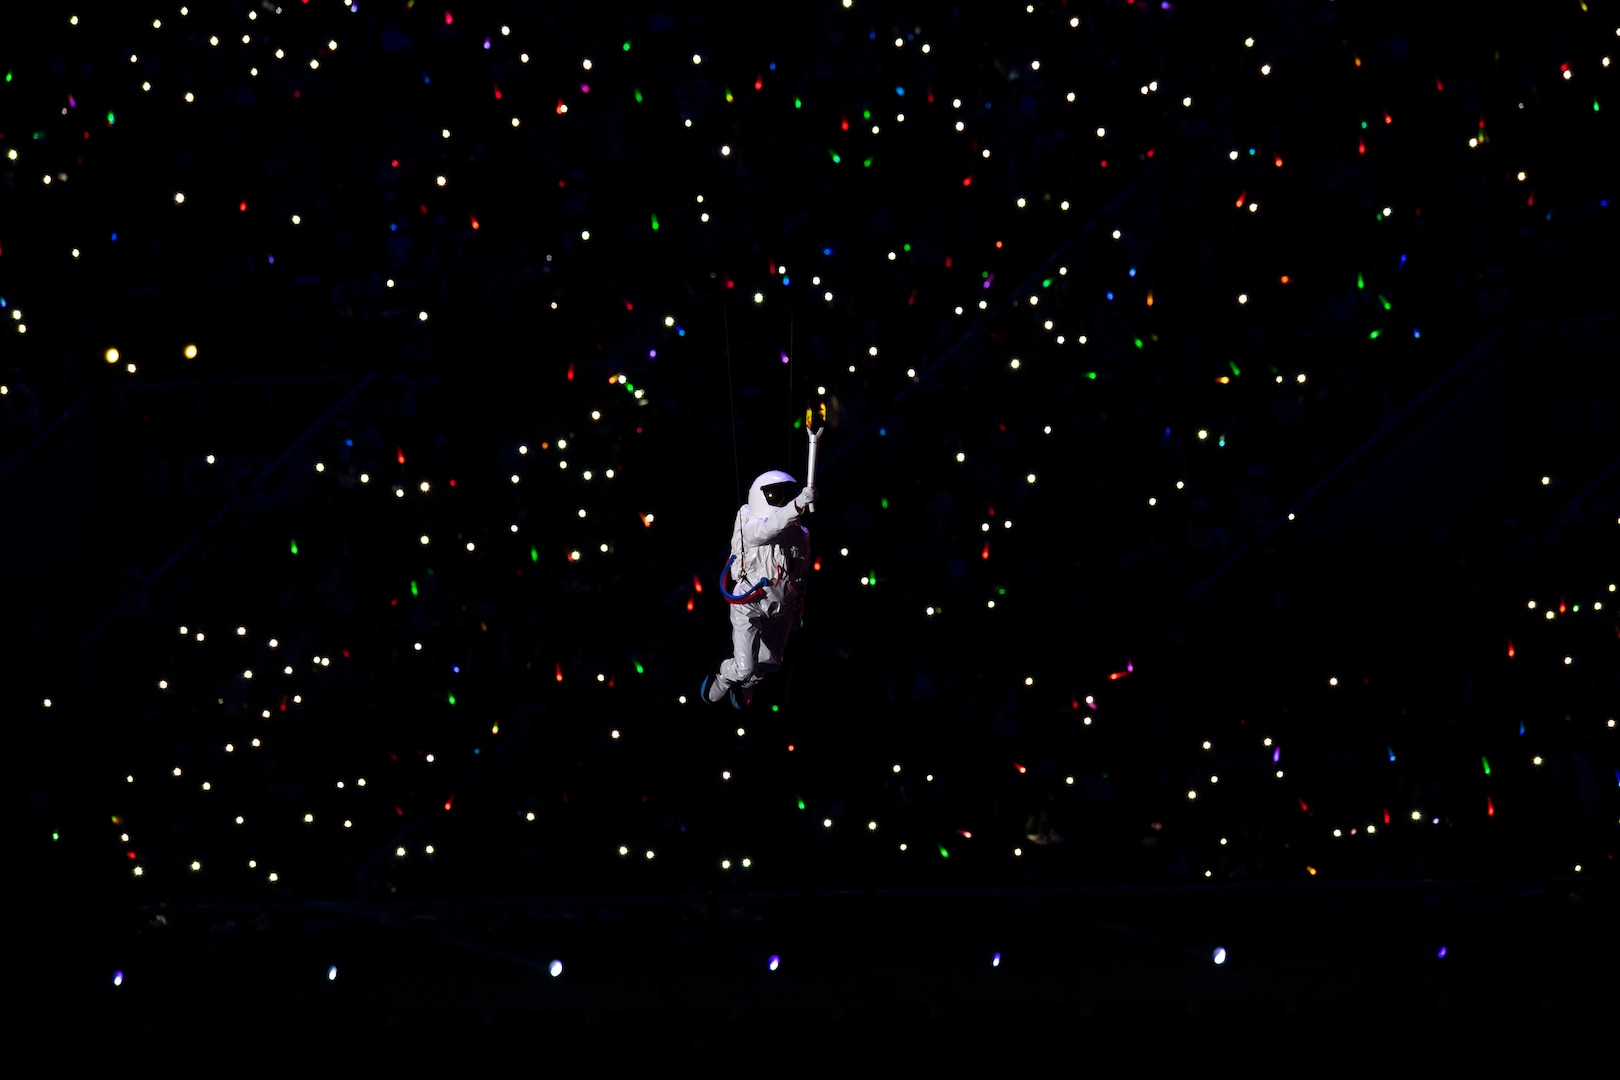 An entertainer floats by wire past a crowd holding light sticks during opening ceremonies for the 2019 CISM Military World Games in Wuhan, China Oct. 18, 2019. Teams from more than 100 countries will compete in dozens of sporting events through Oct. 28. (DoD photo by EJ Hersom)